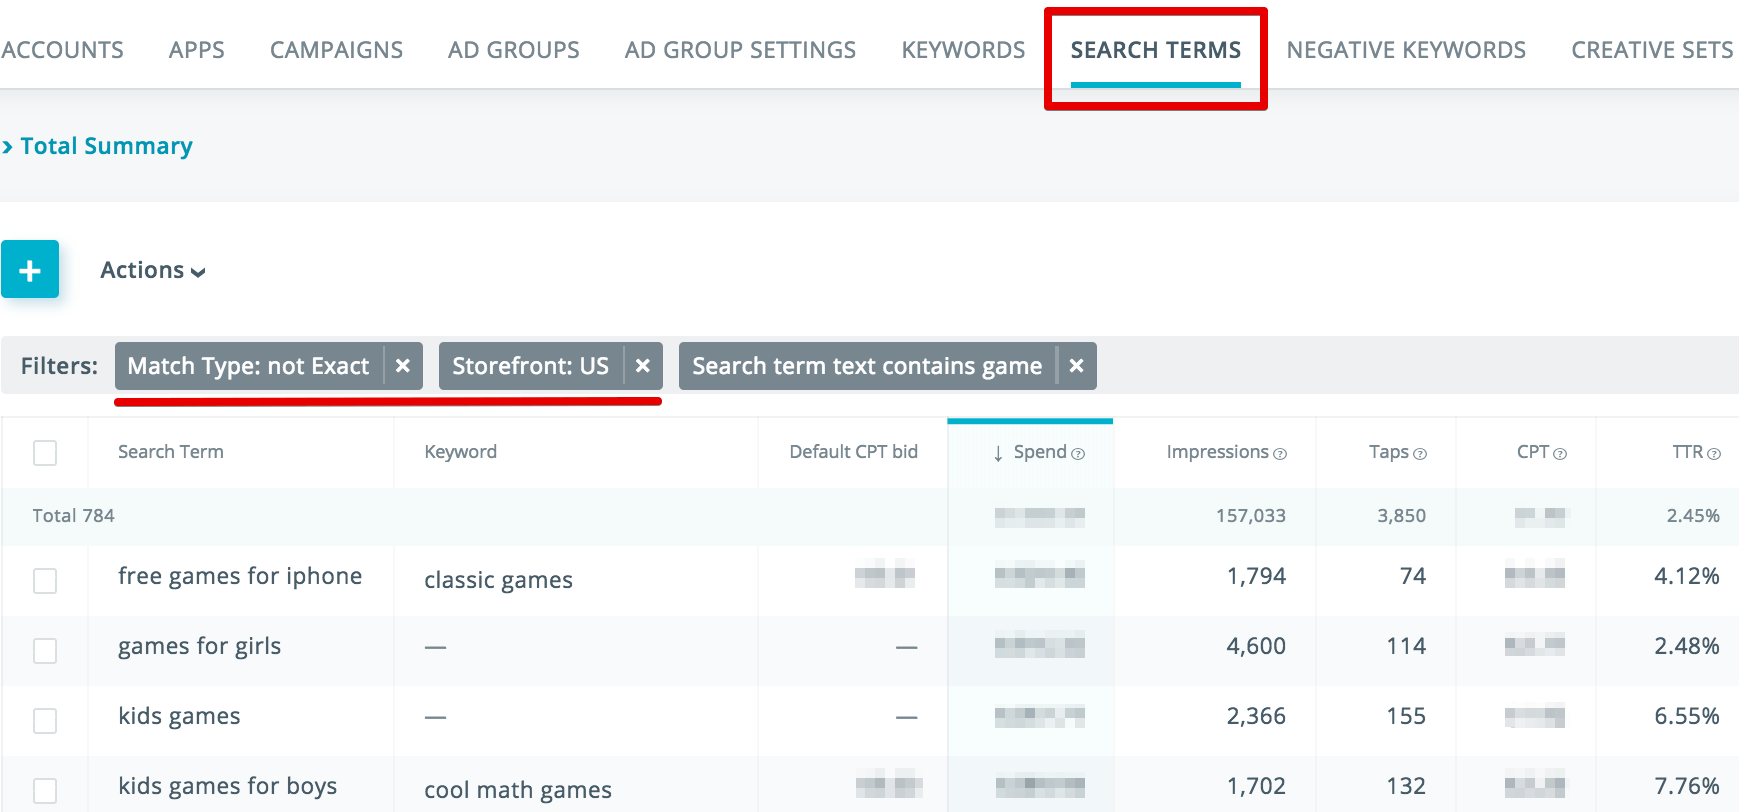 Search terms analysis in SearchAdsHQ